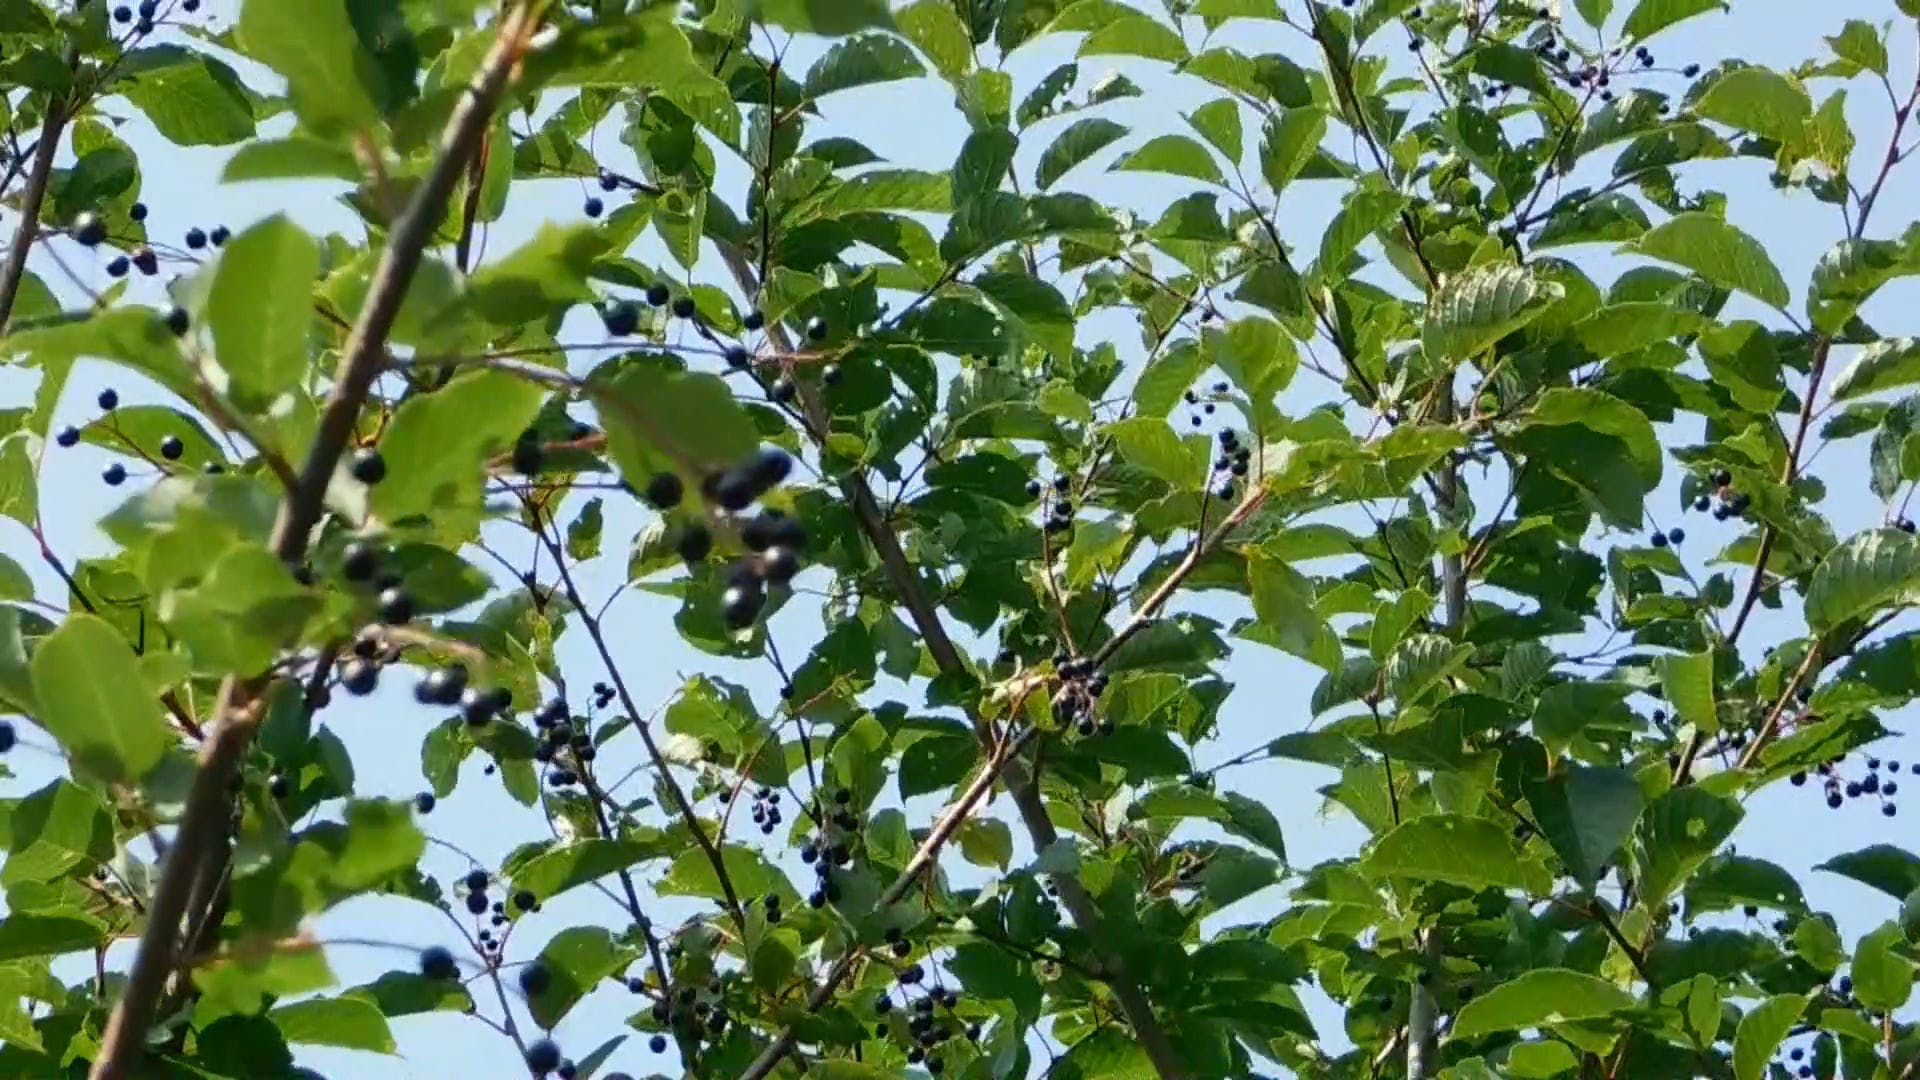 Black Berries on a Small Tree